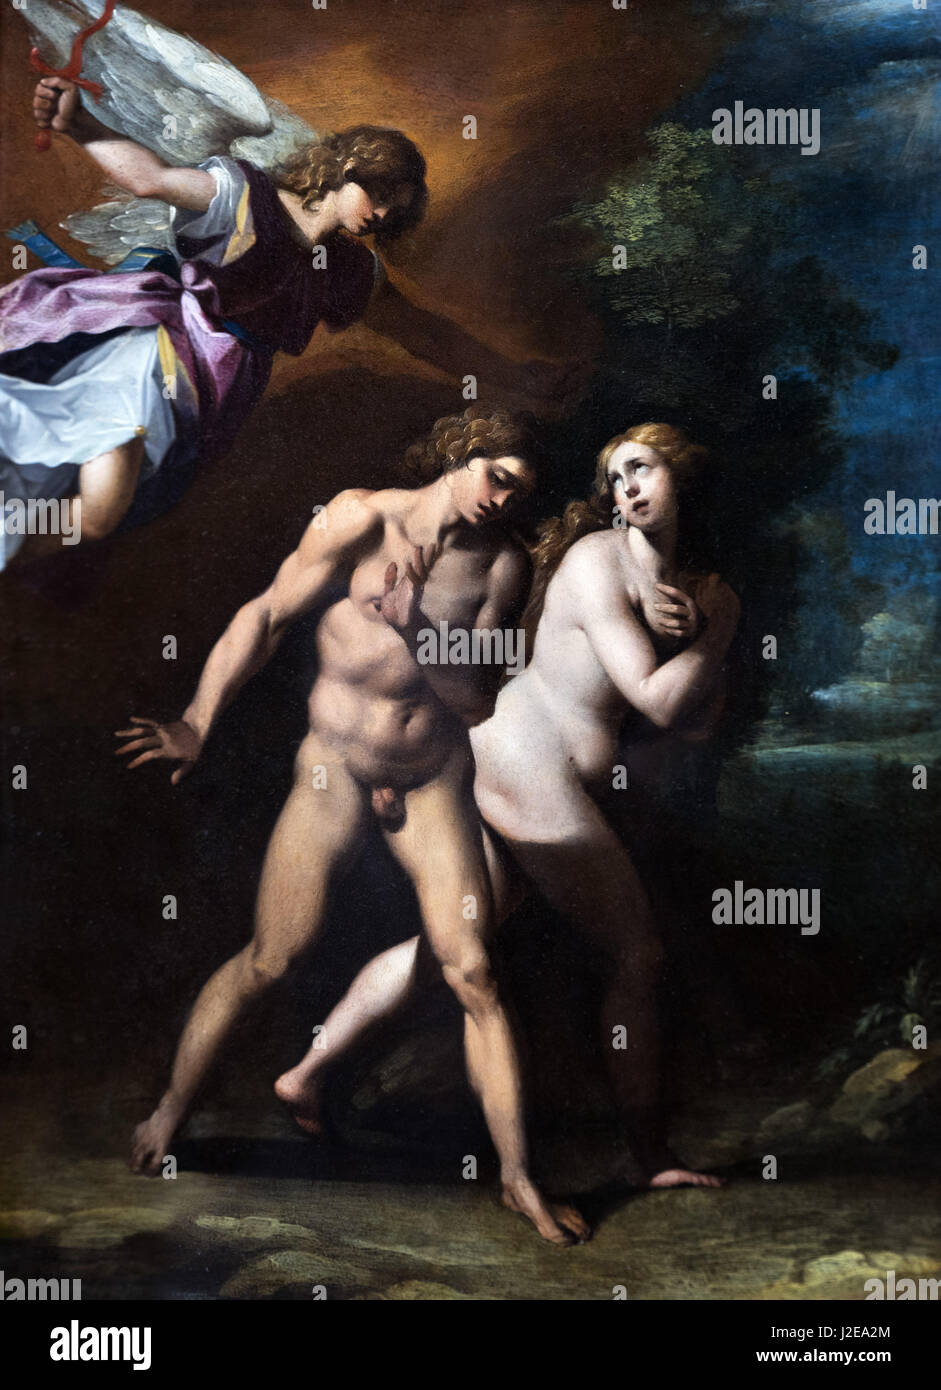 The Expulsion of Adam and Eve from Paradise by Cavaliere d'Arpino (Giuseppe Cesari: 1568-1640), c.1597 - Stock Image